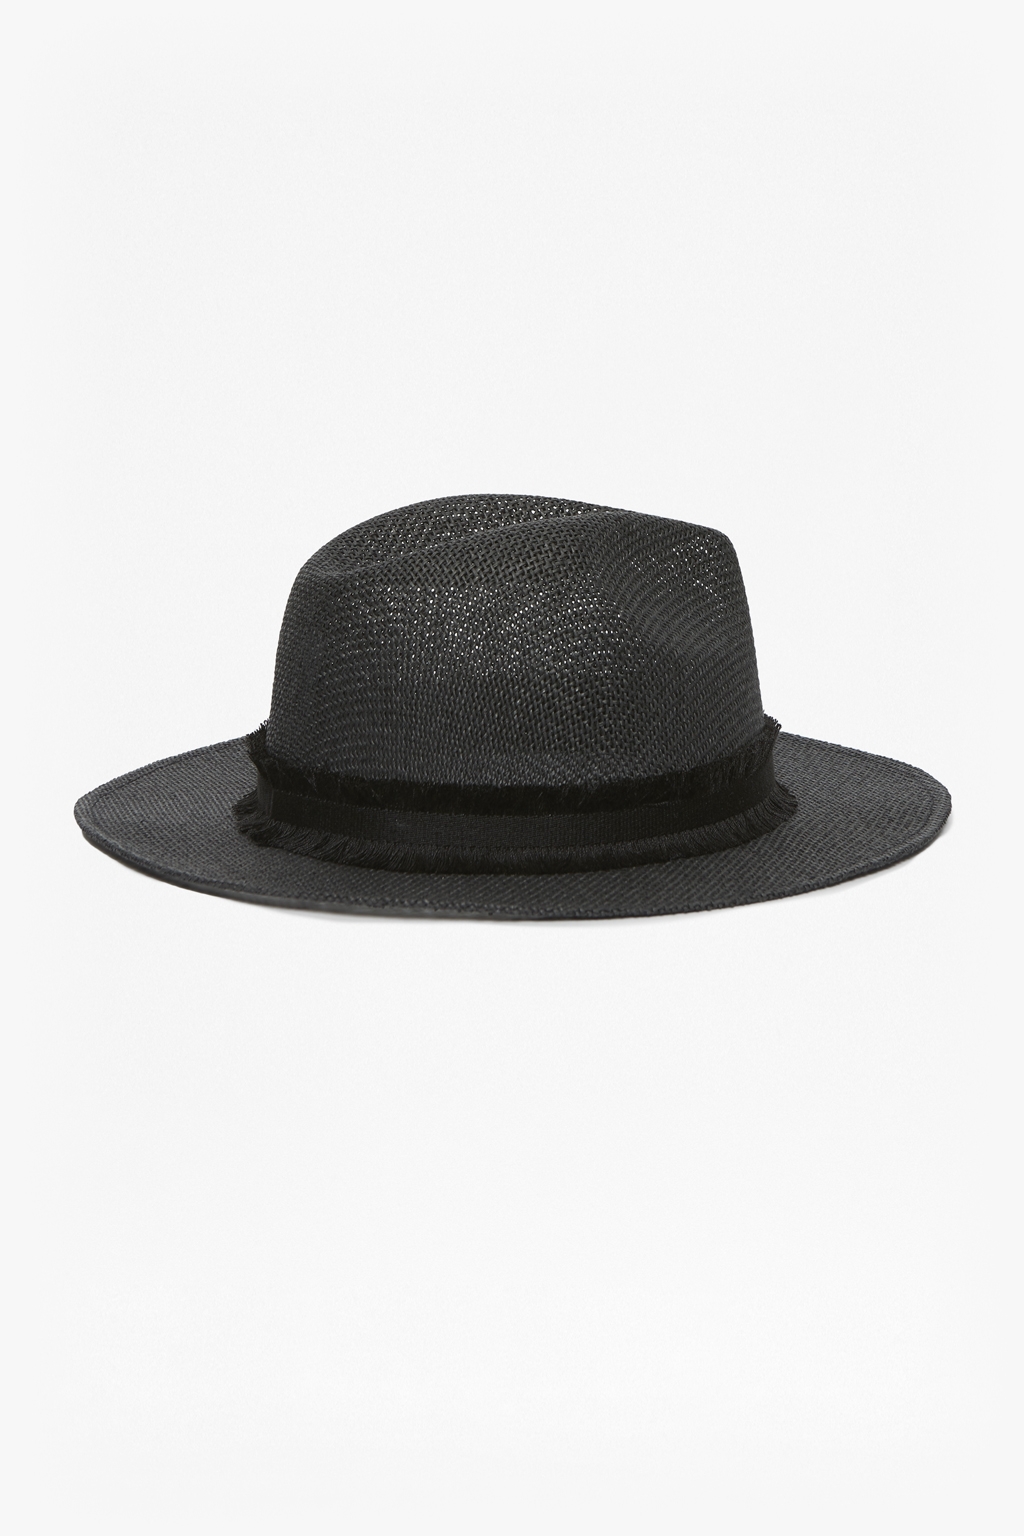 Straw Beach Trilby Hat With Band Detail - Cream black French Connection High Quality For Sale 8UI42hWQTr